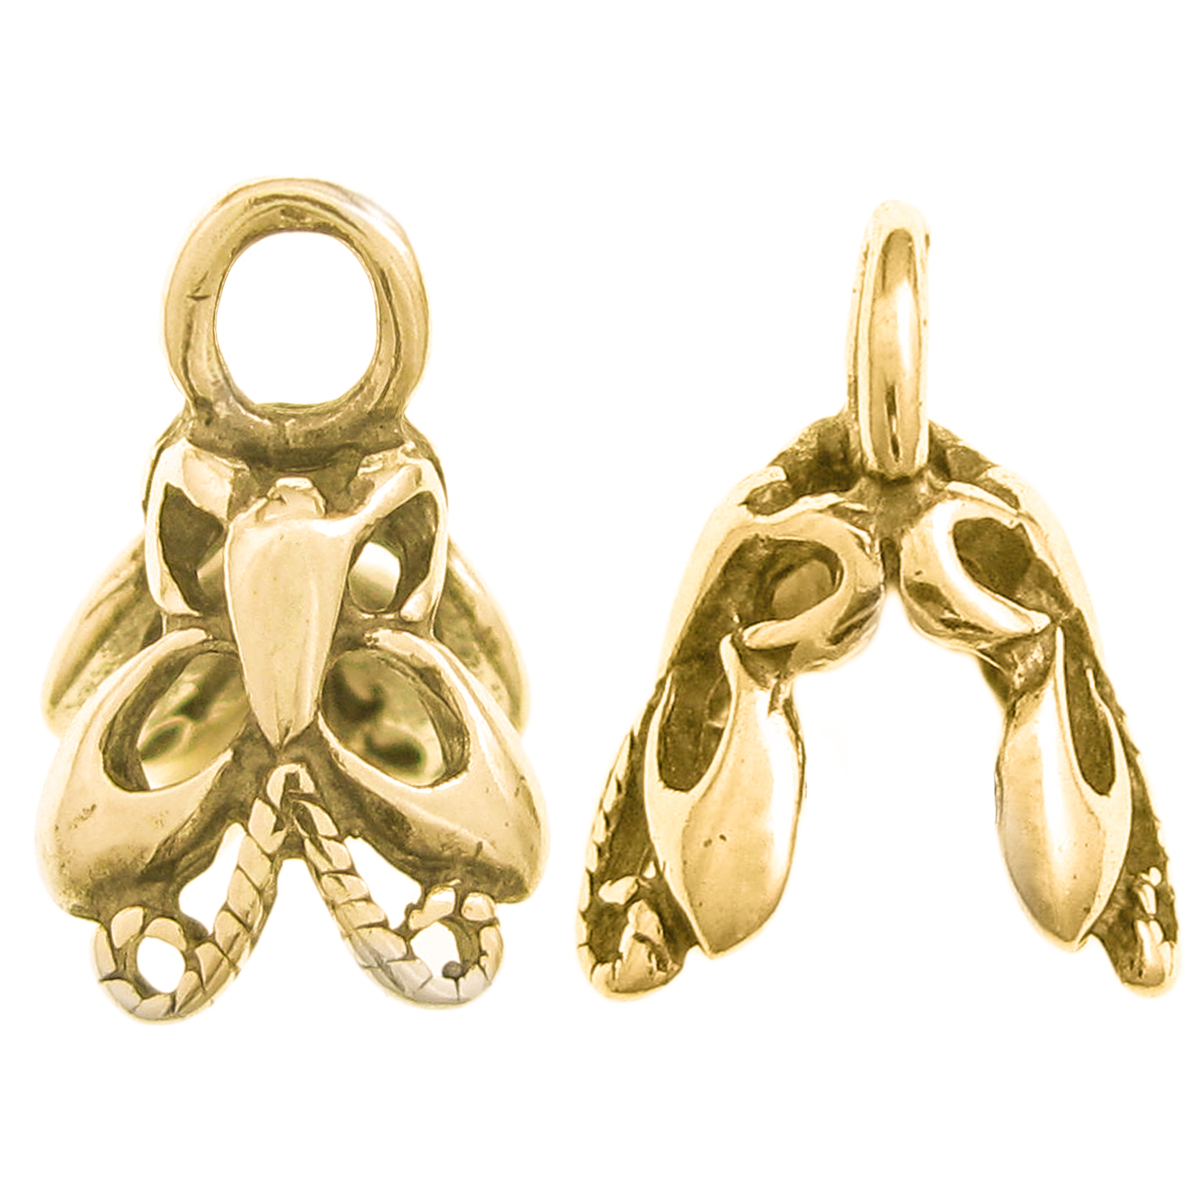 2x 14K Real Gold Plated STERLING SILVER Bail  BUTTERFLY PENDANT CLASP